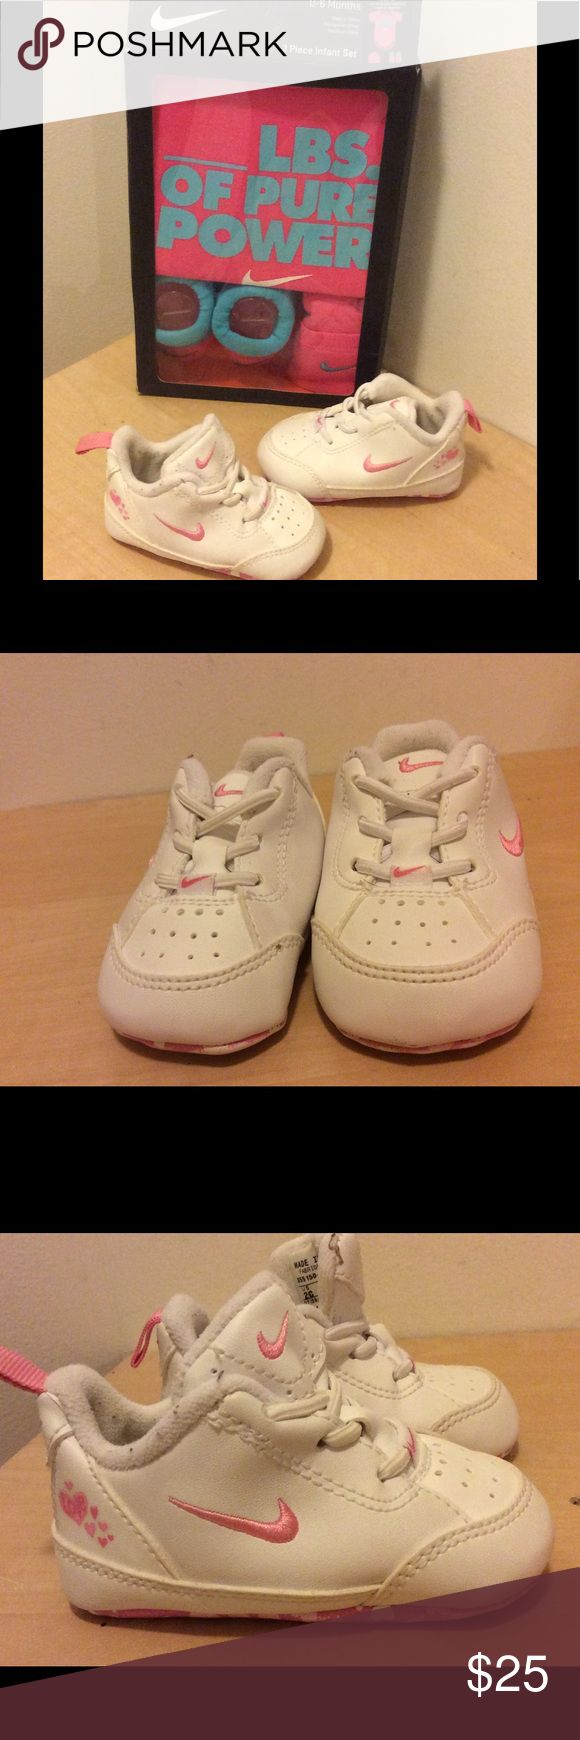 Infant Nike Onesie Set & Nike Heart Sneakers Sz 2c Awesome NEW onesie set size 0-5 months and nike shoes with normal signs of wear size 2c Nike Shoes Sneakers